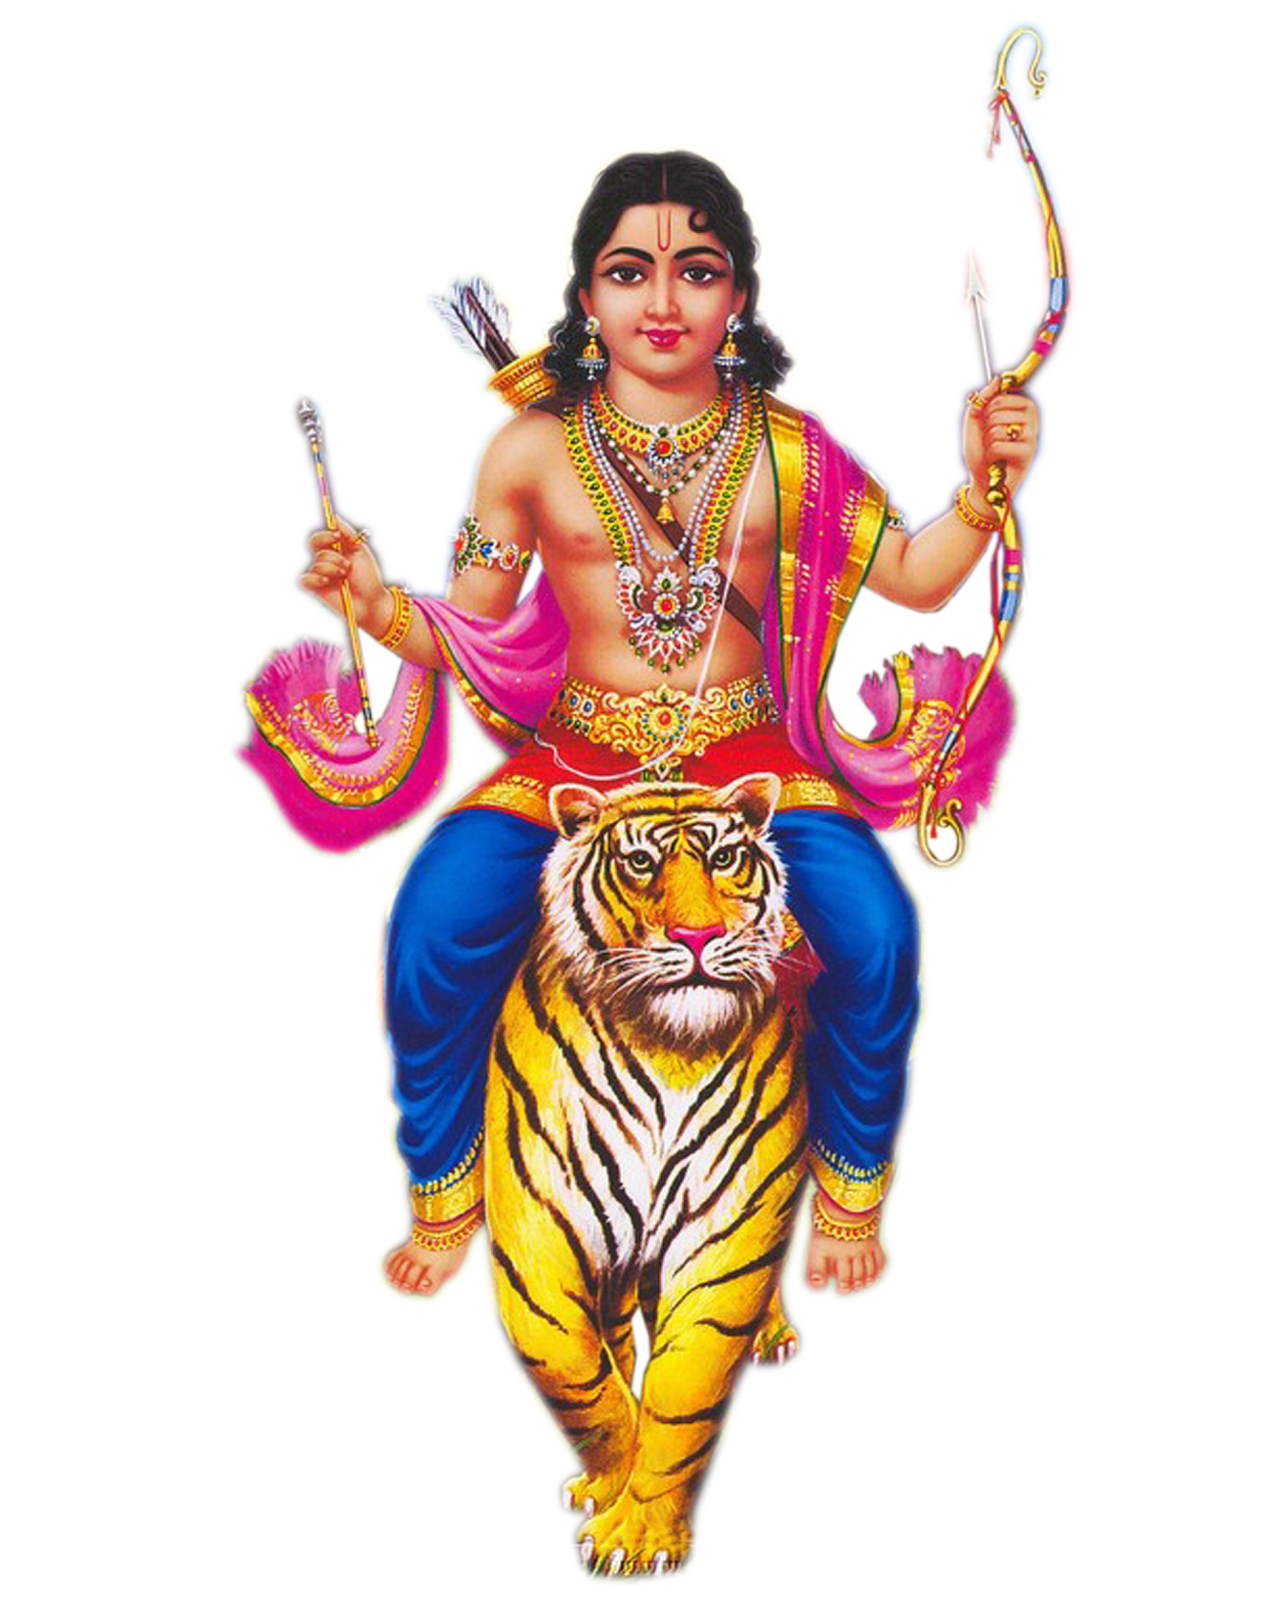 Download Wallpaper Lord Ayyappan - 9fd17f72a068e211df0fc0c31c951ad2  You Should Have_943247.png